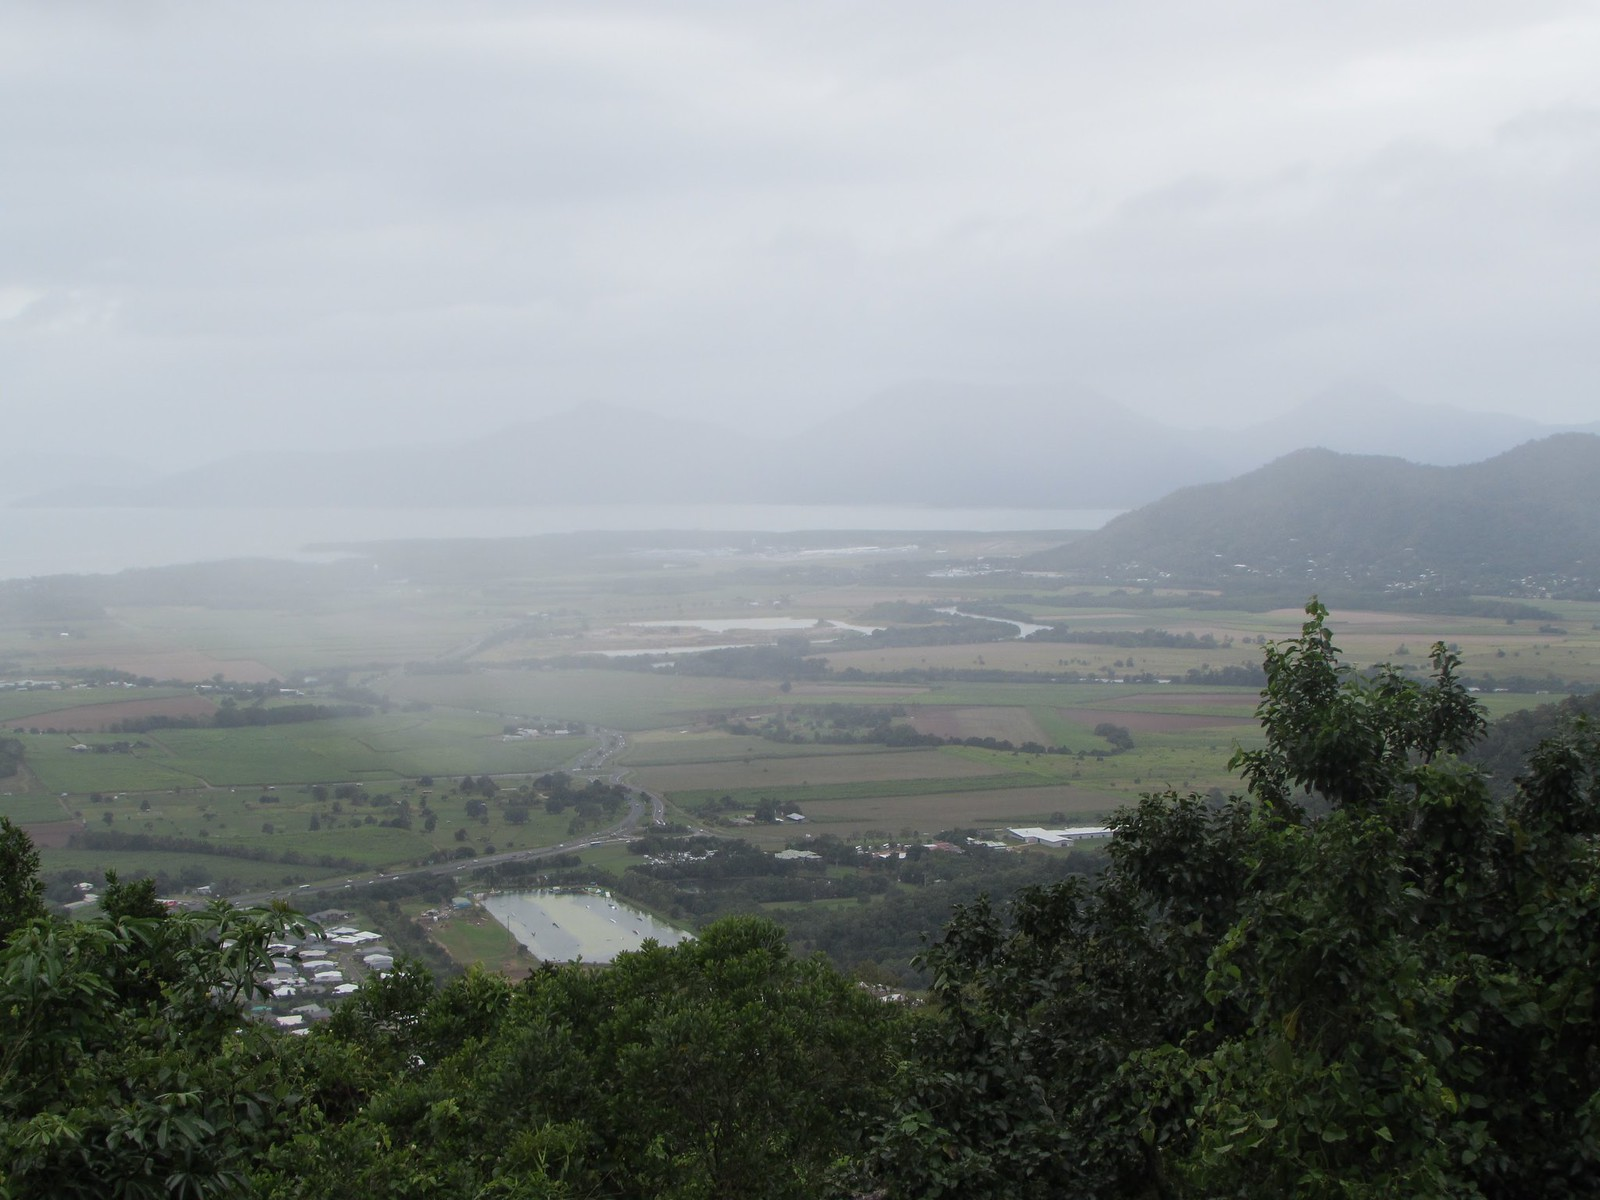 View of Cairns Airport